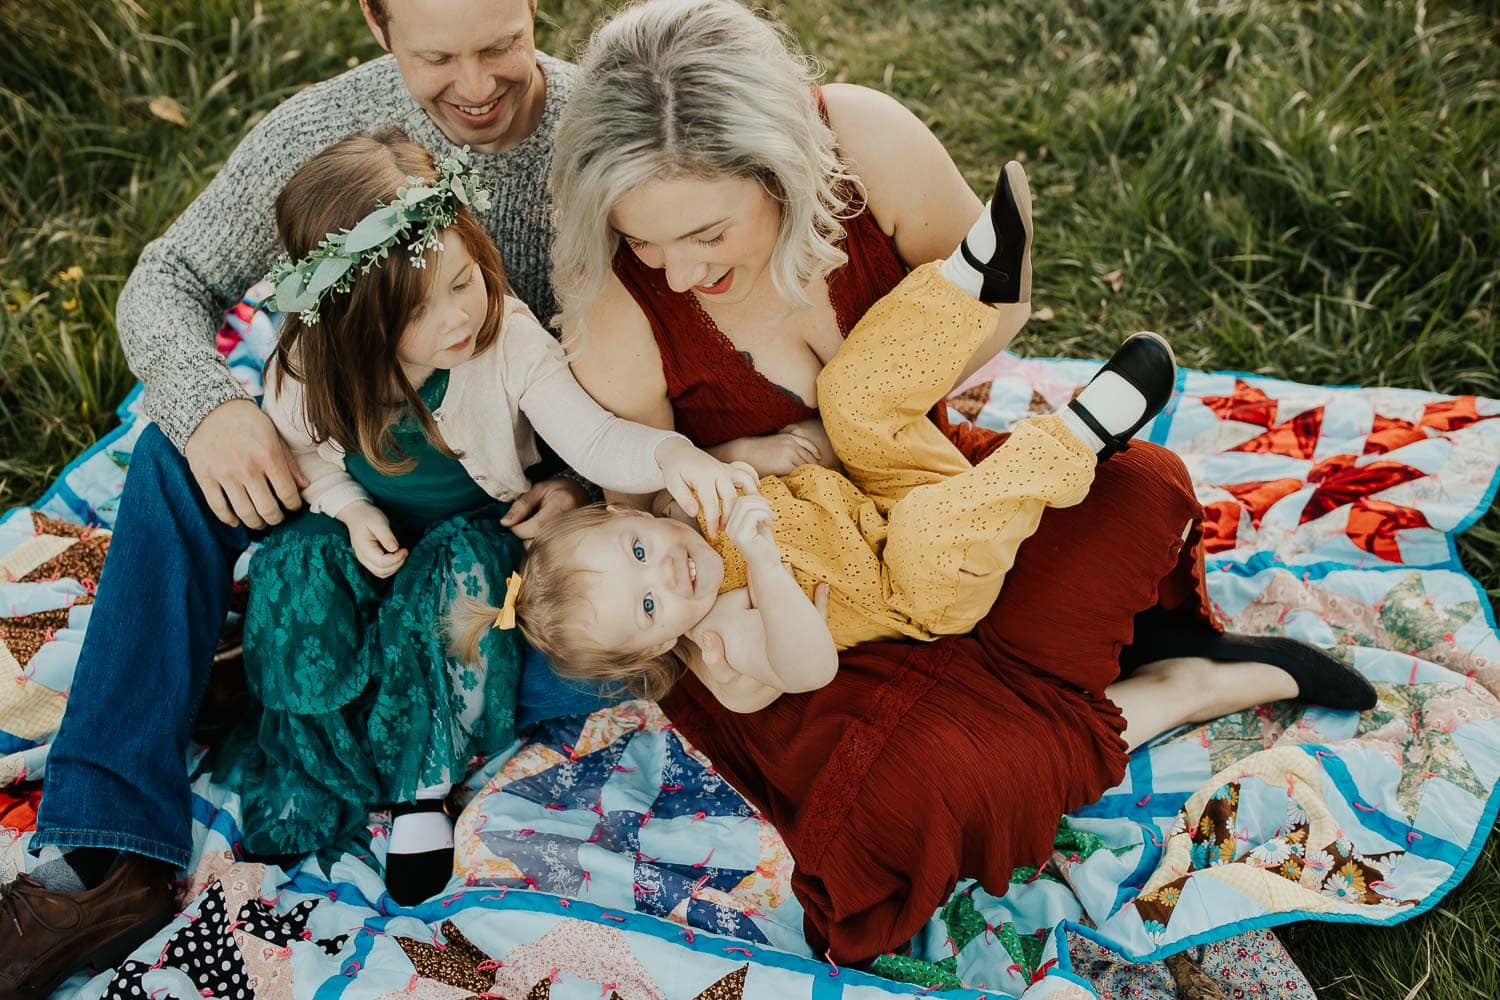 Family photos in portland oregon - family of four playing together on blanket wearing all textures without patterns